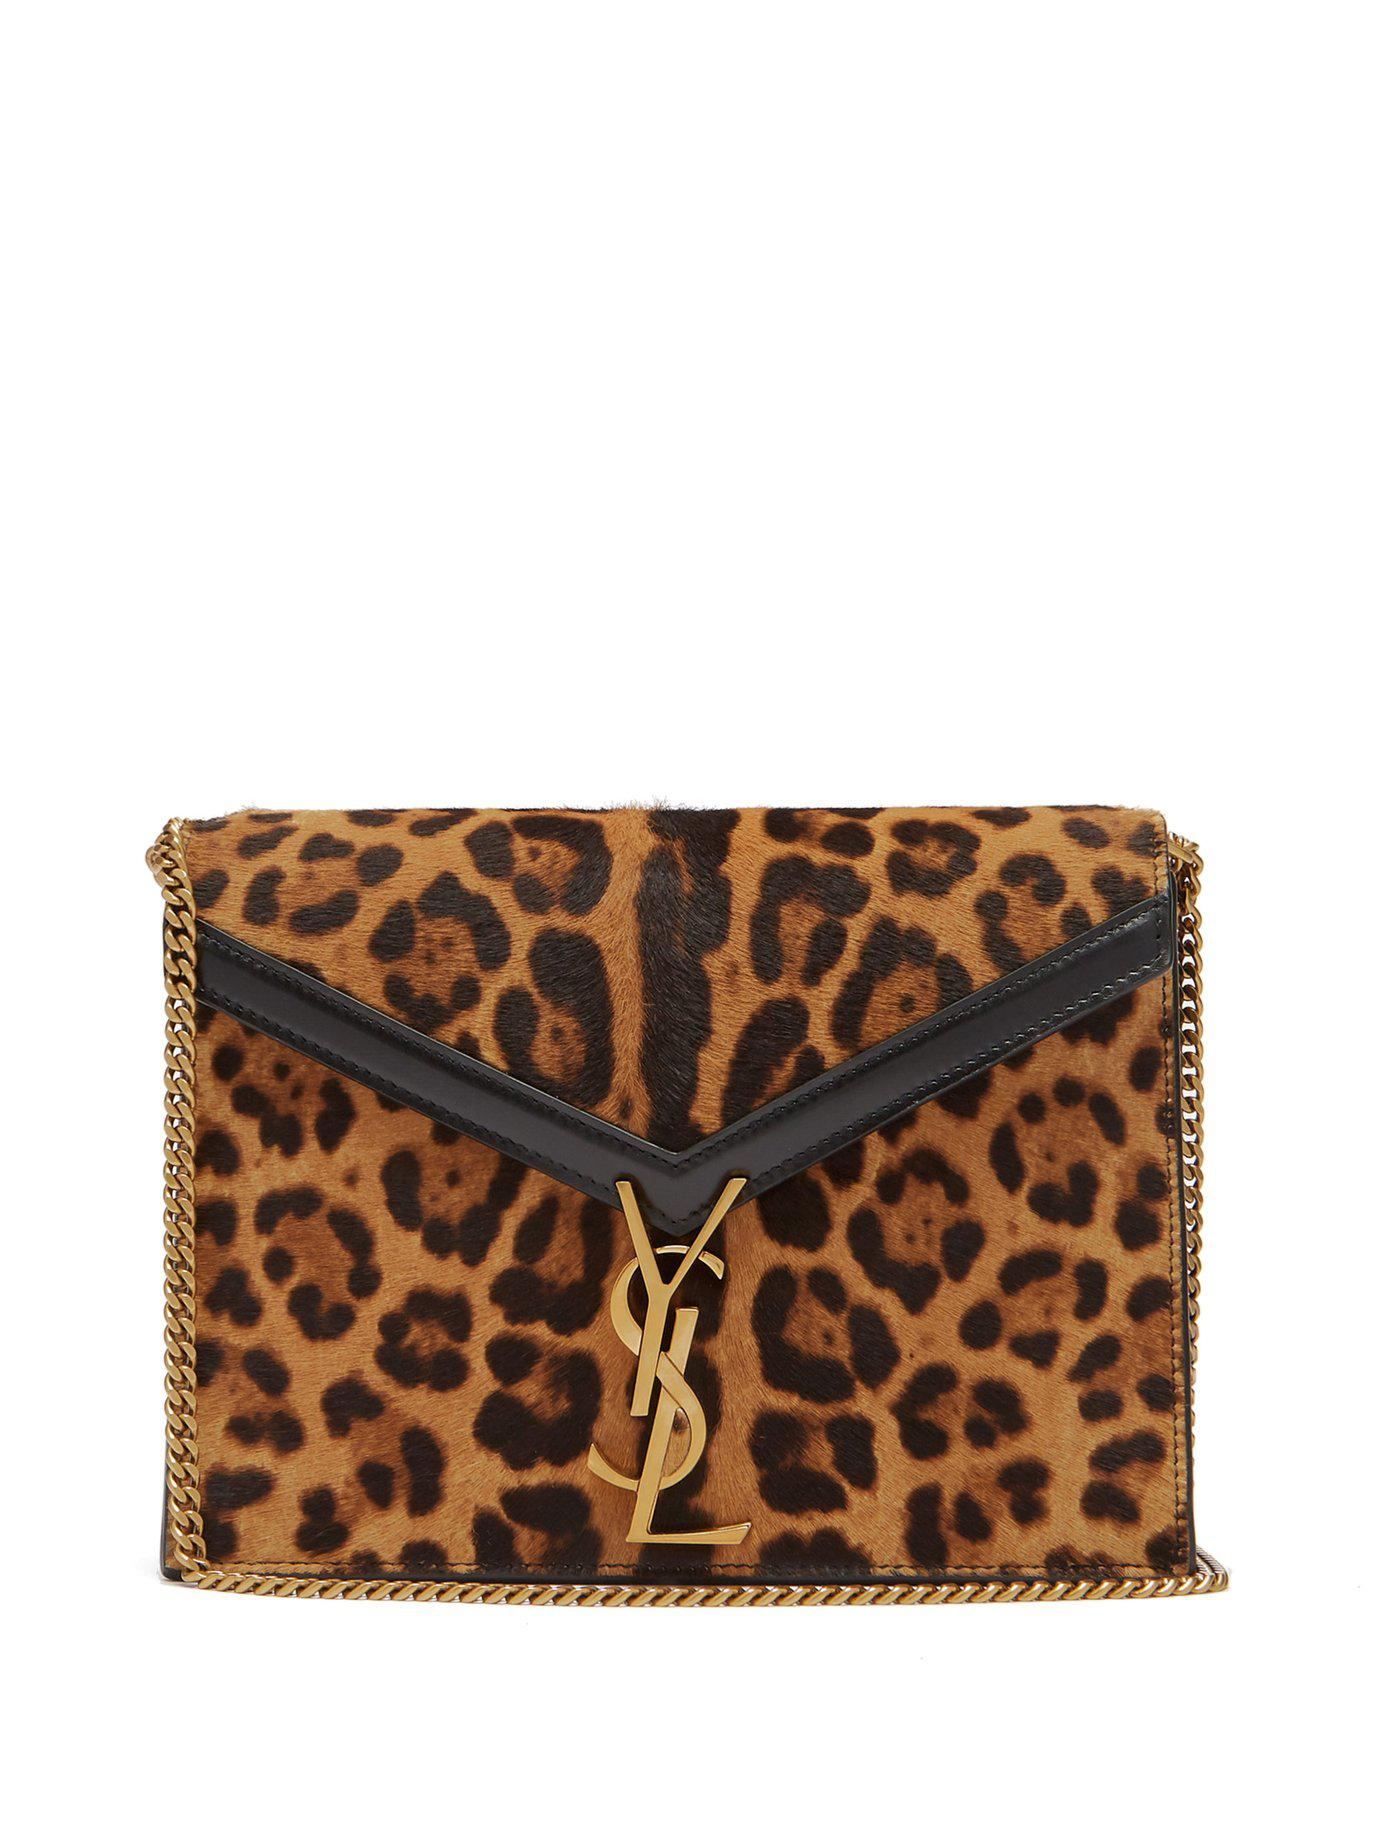 d027527635c Saint Laurent. Women s Cassandra Leopard Print Cross Body Bag